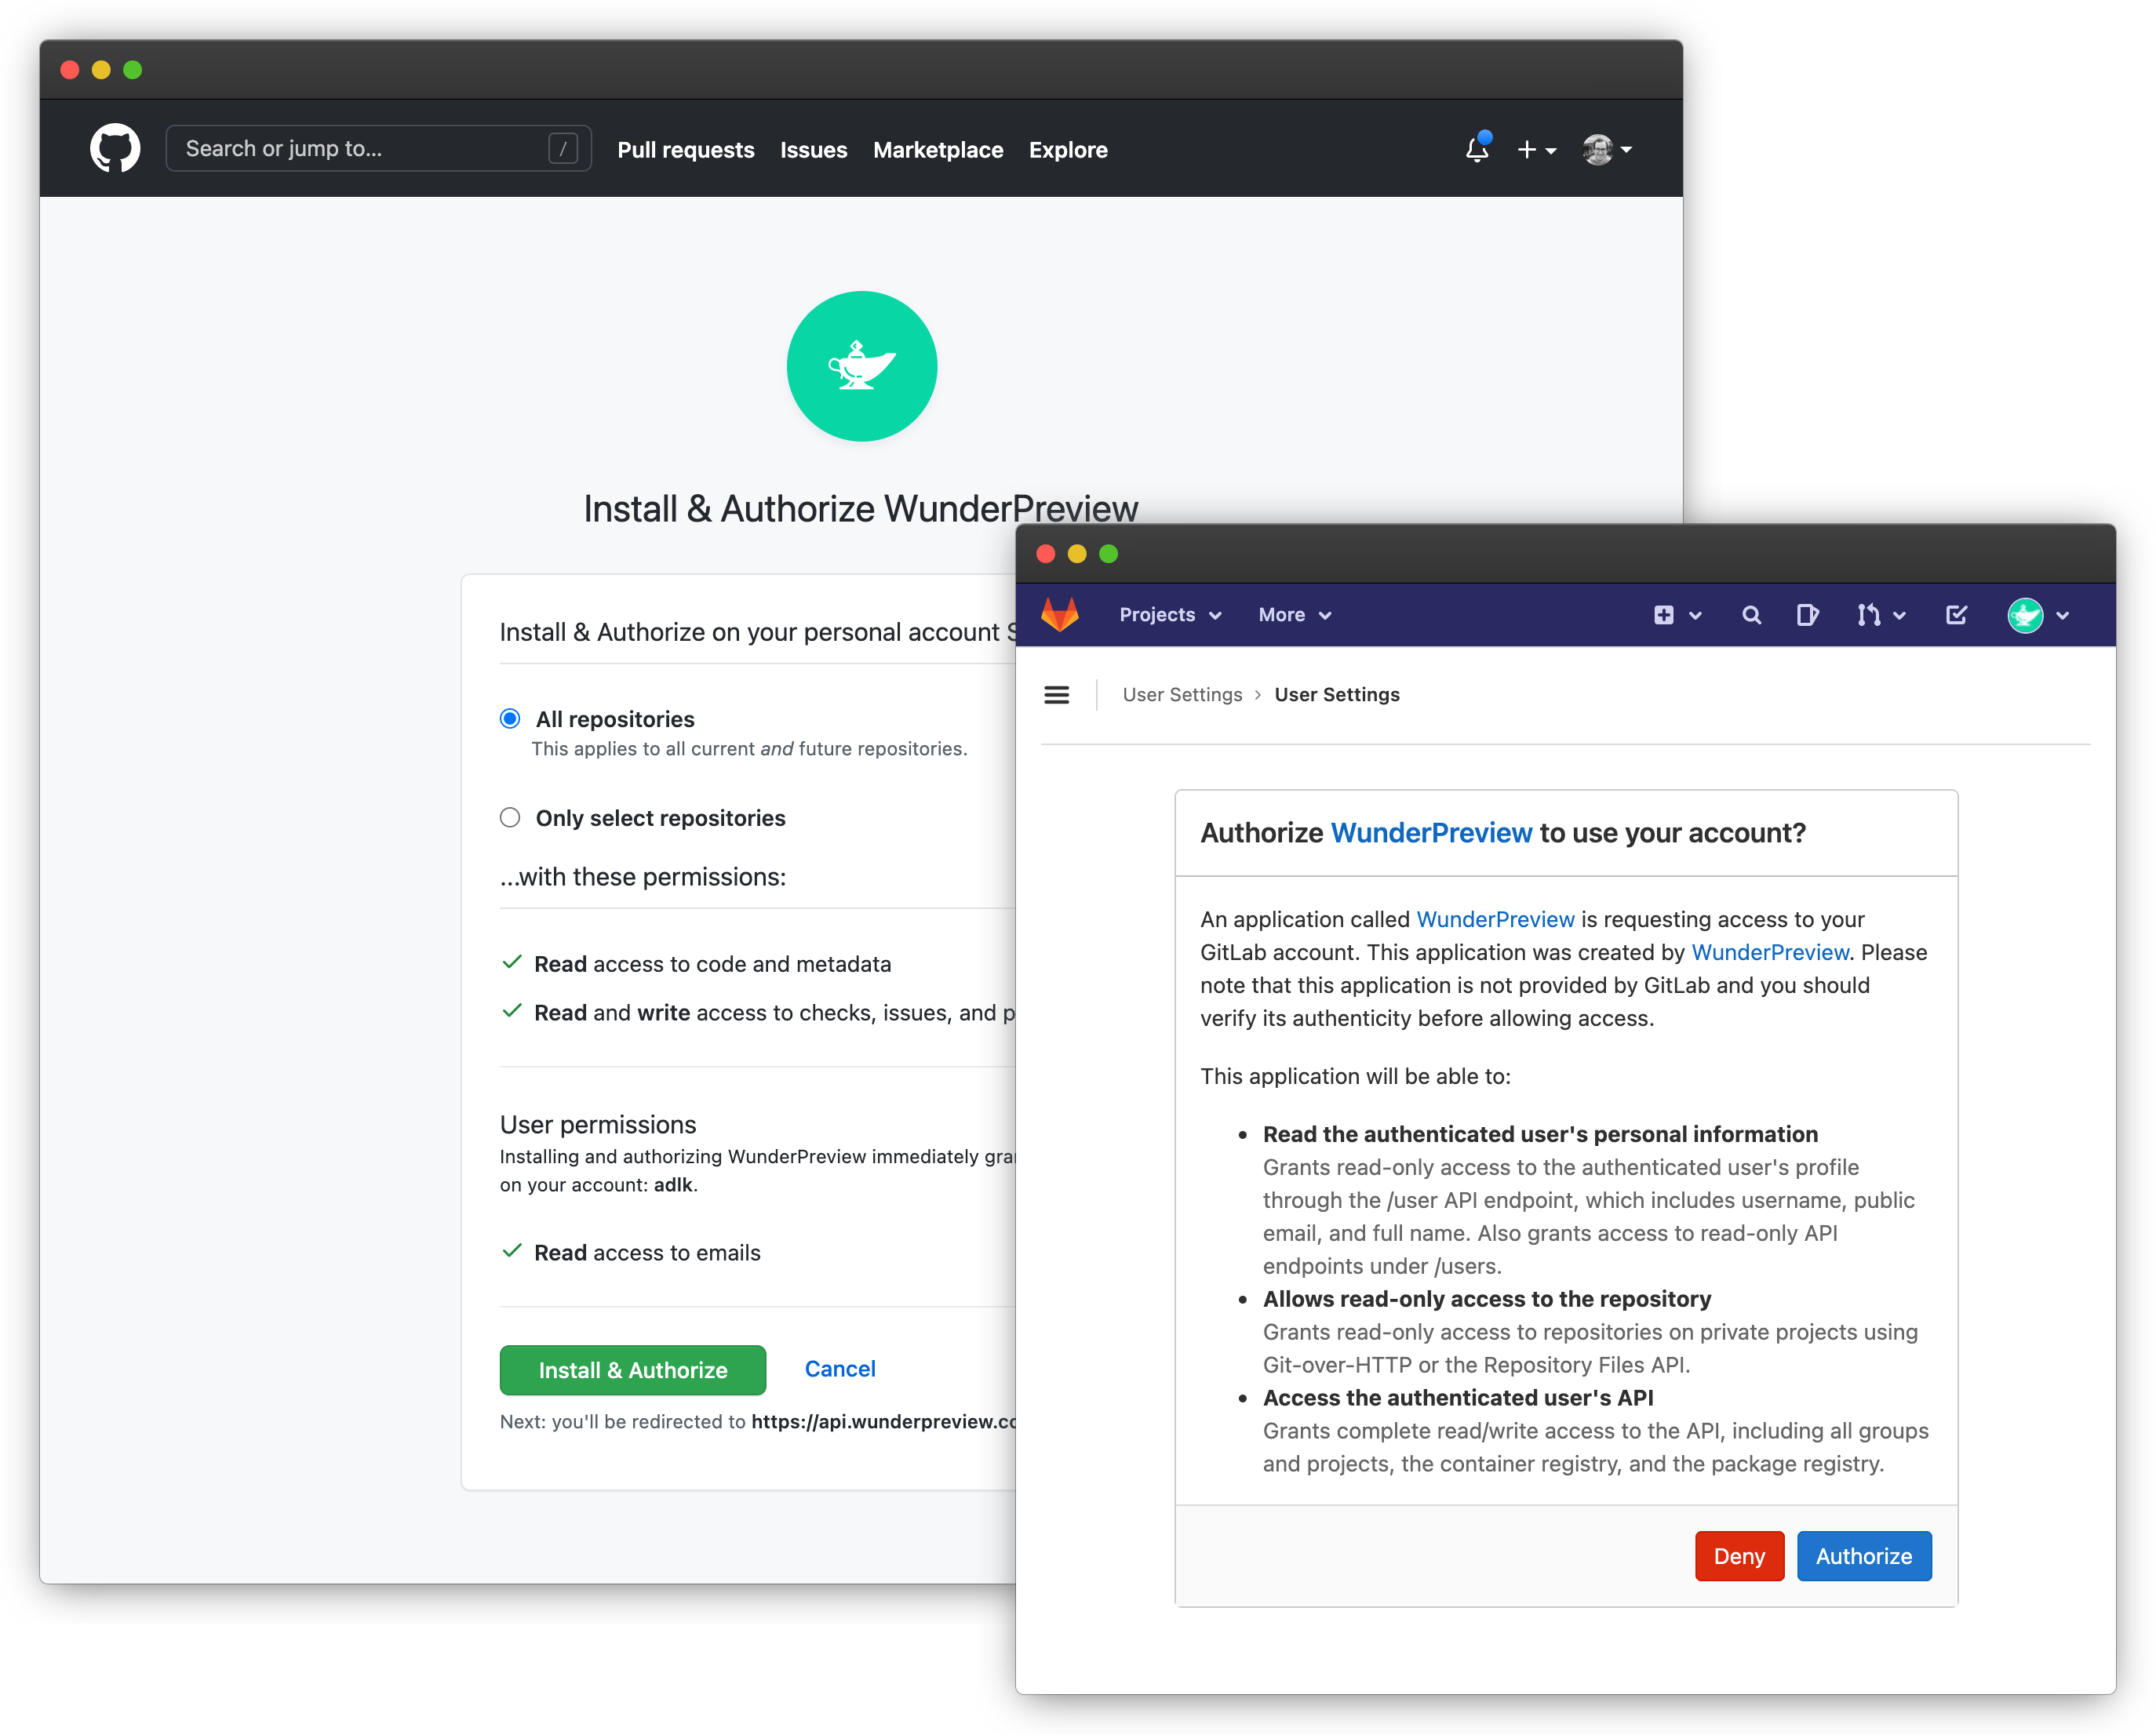 Screenshots of GitHub and Gitlab to authorize WunderPreview to access organizations & repositories